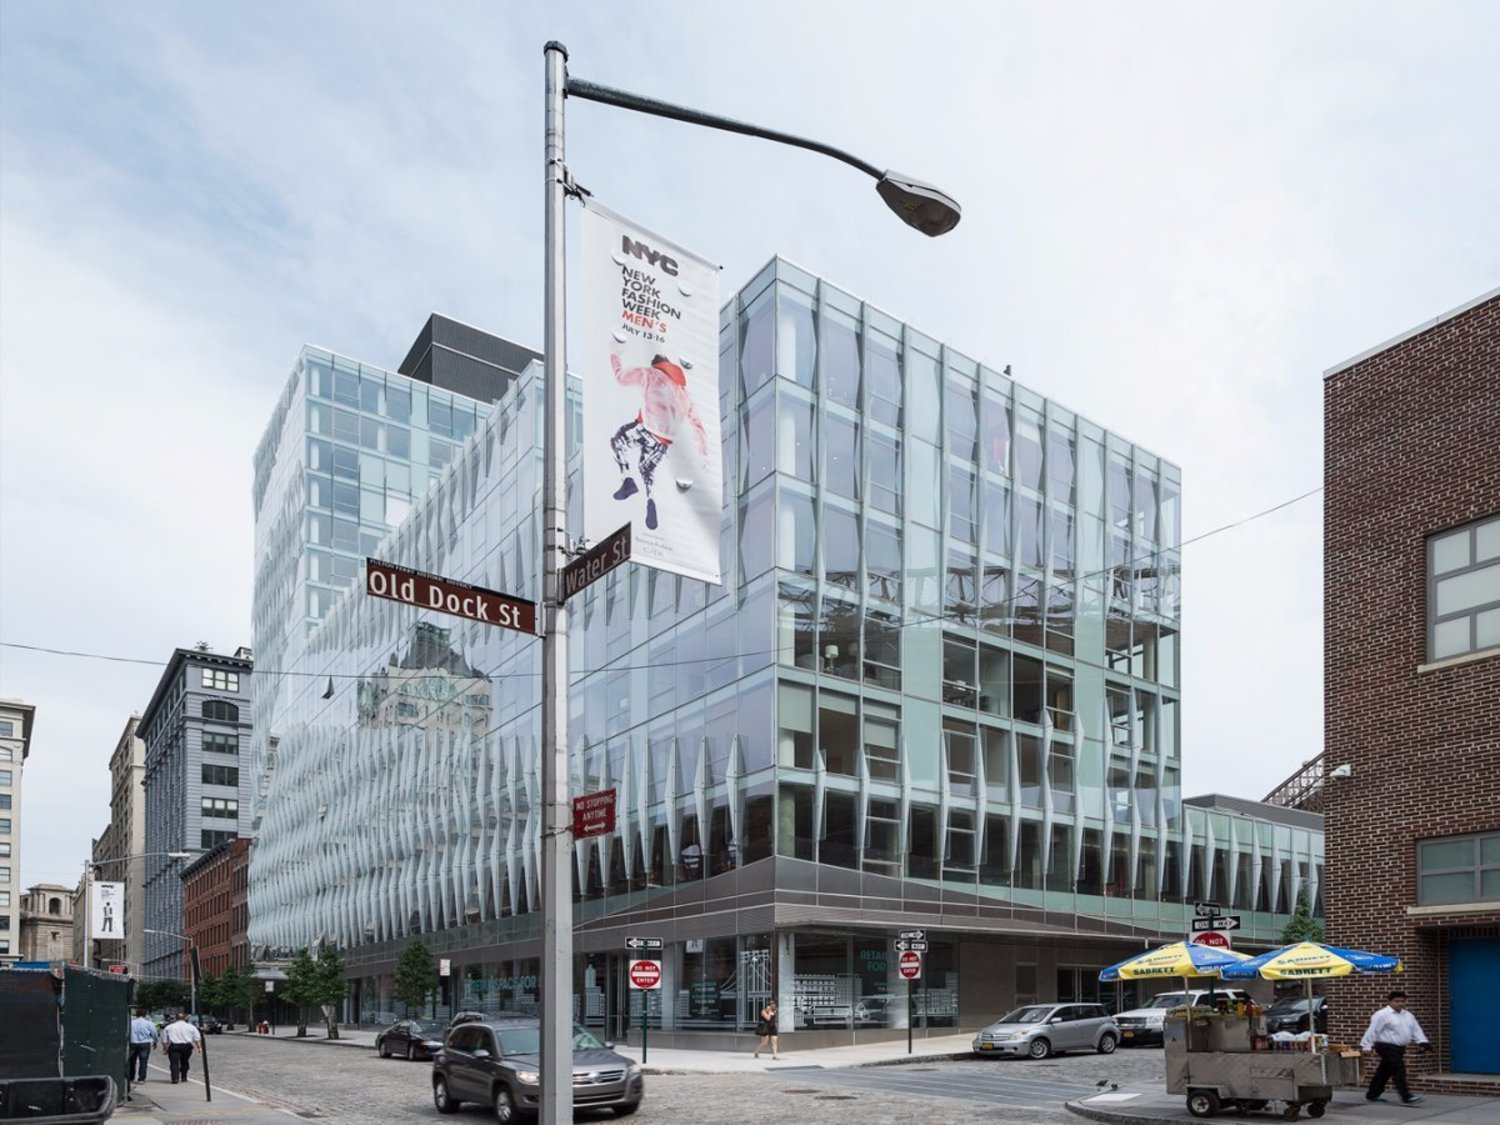 Gaze upon 60 Water Street, the most expensive rental building in Brooklyn. Its glassy exterior separates it from Dumbo's typical post-industrial architectural style.